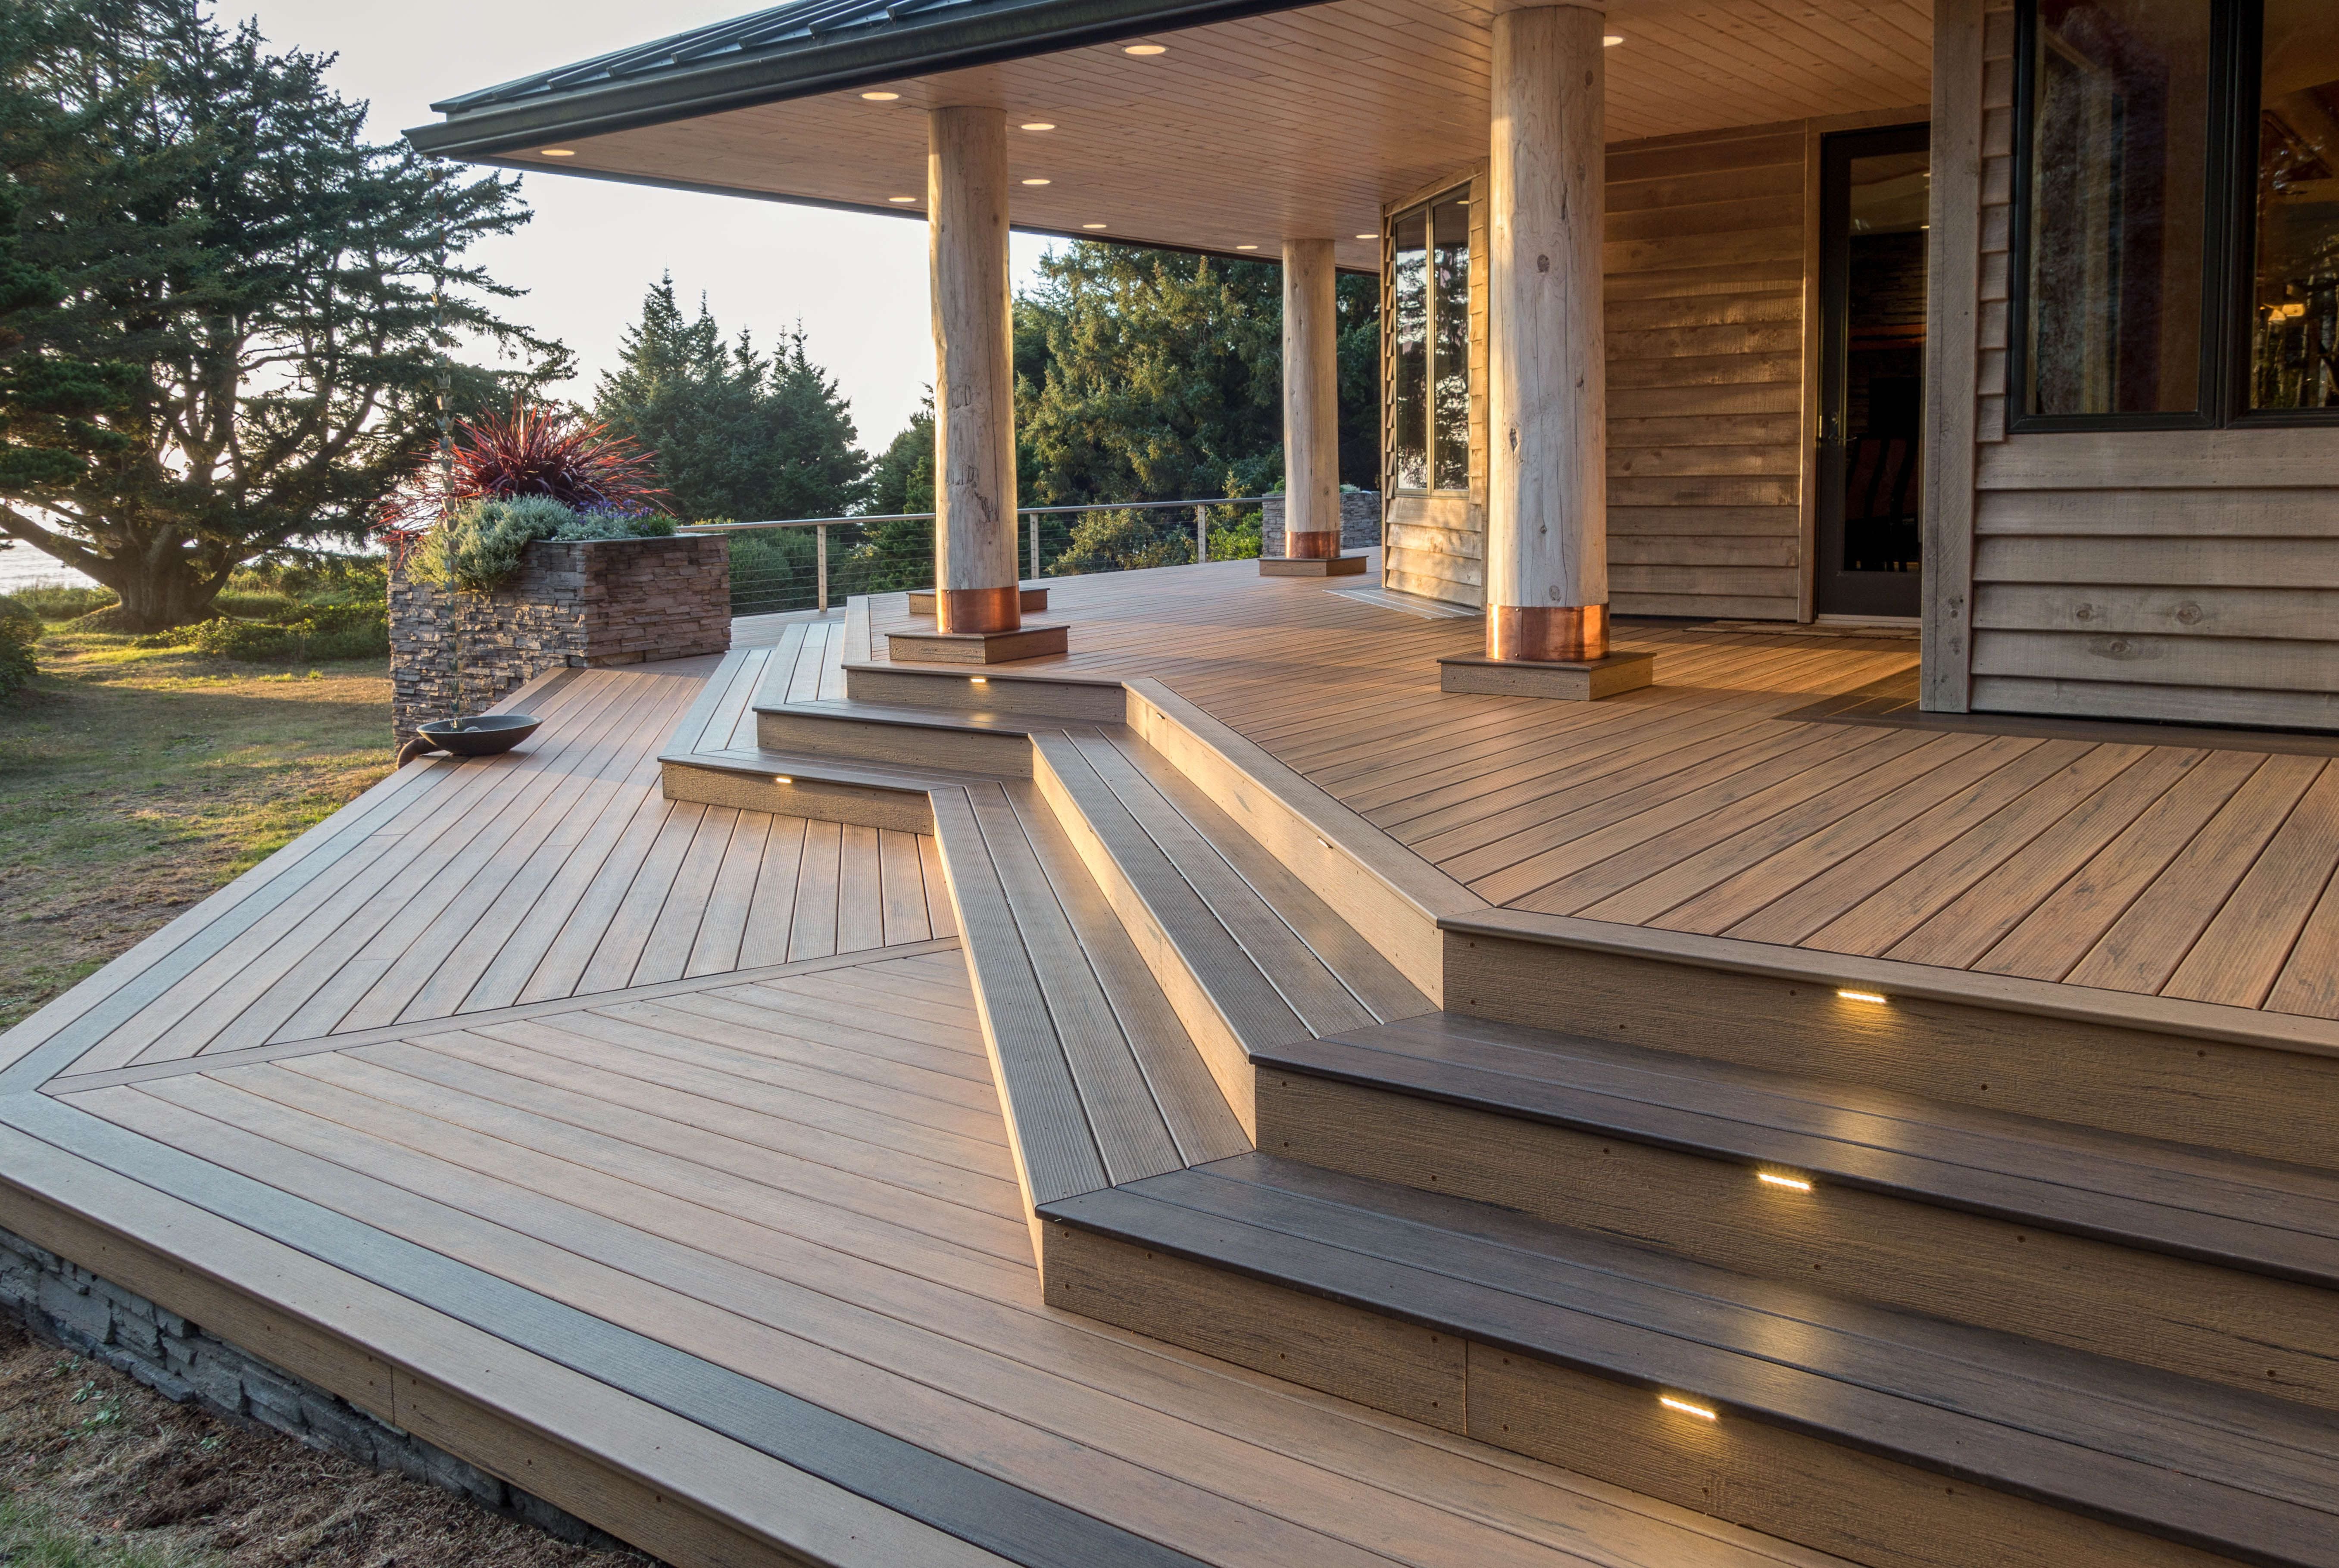 Make your backyard one to remember with a TimberTechDeck